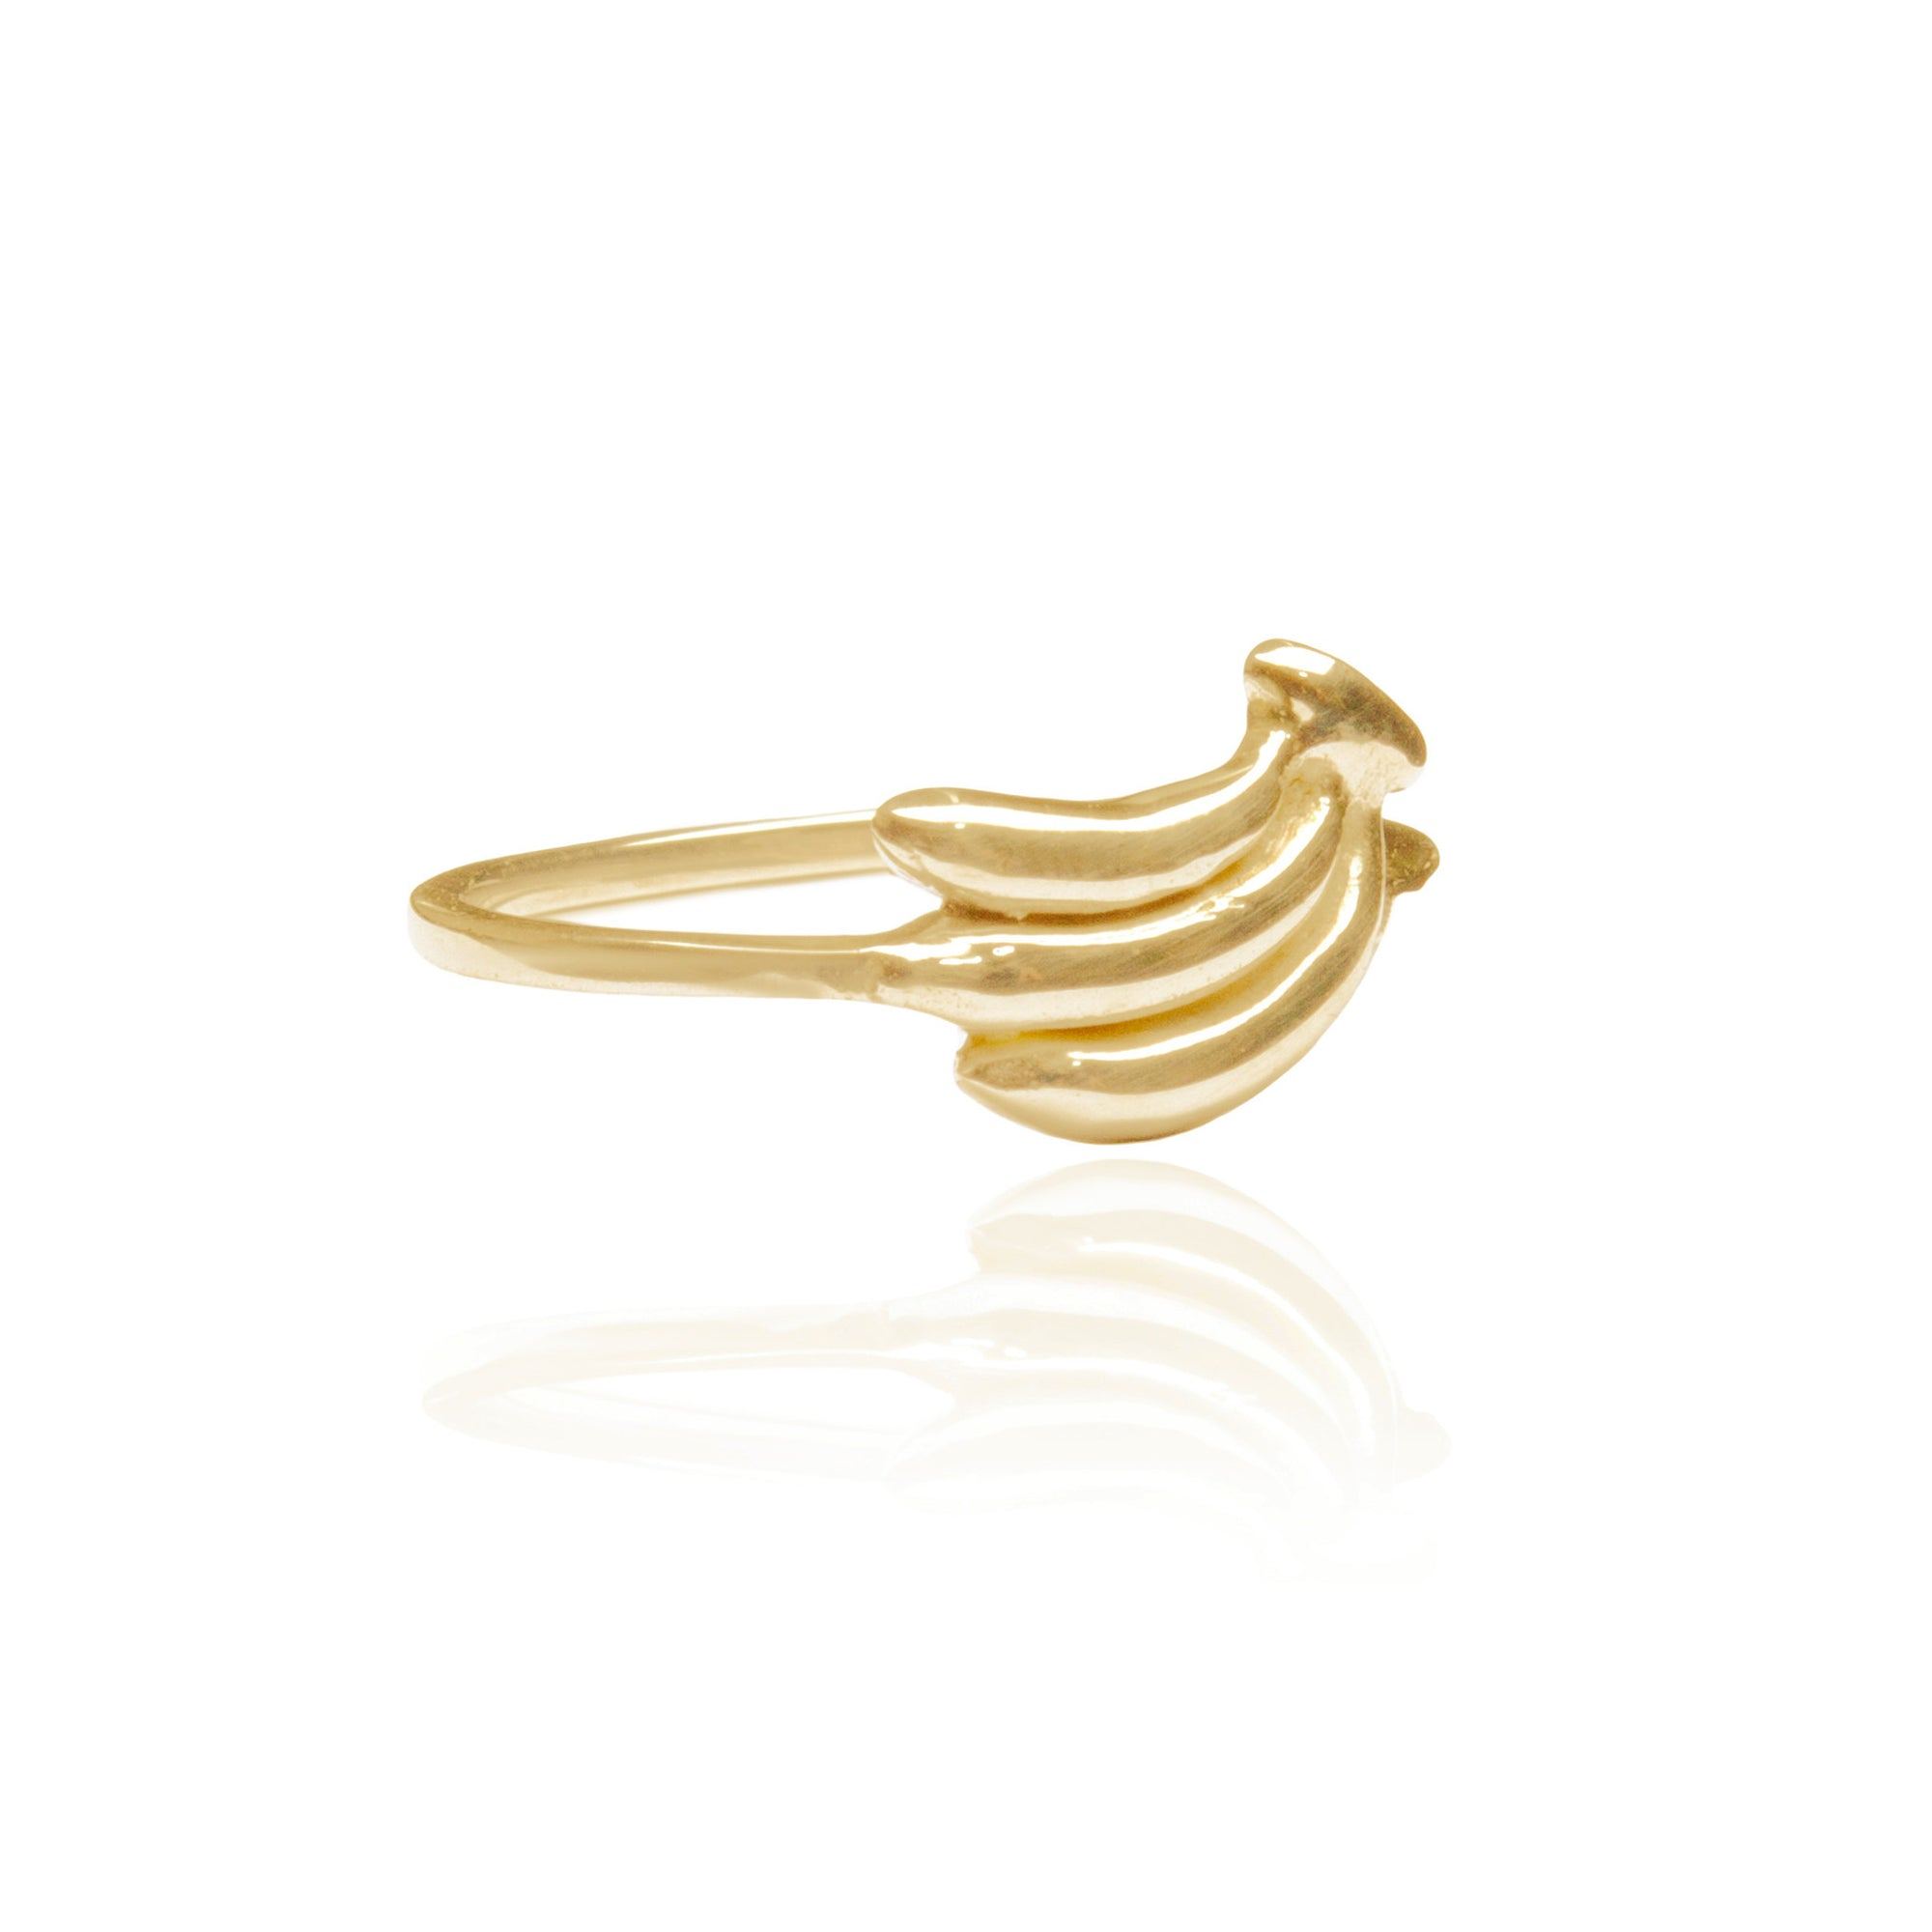 La Luna Rose Jewellery - You Drive me Bananas Ring - Gold